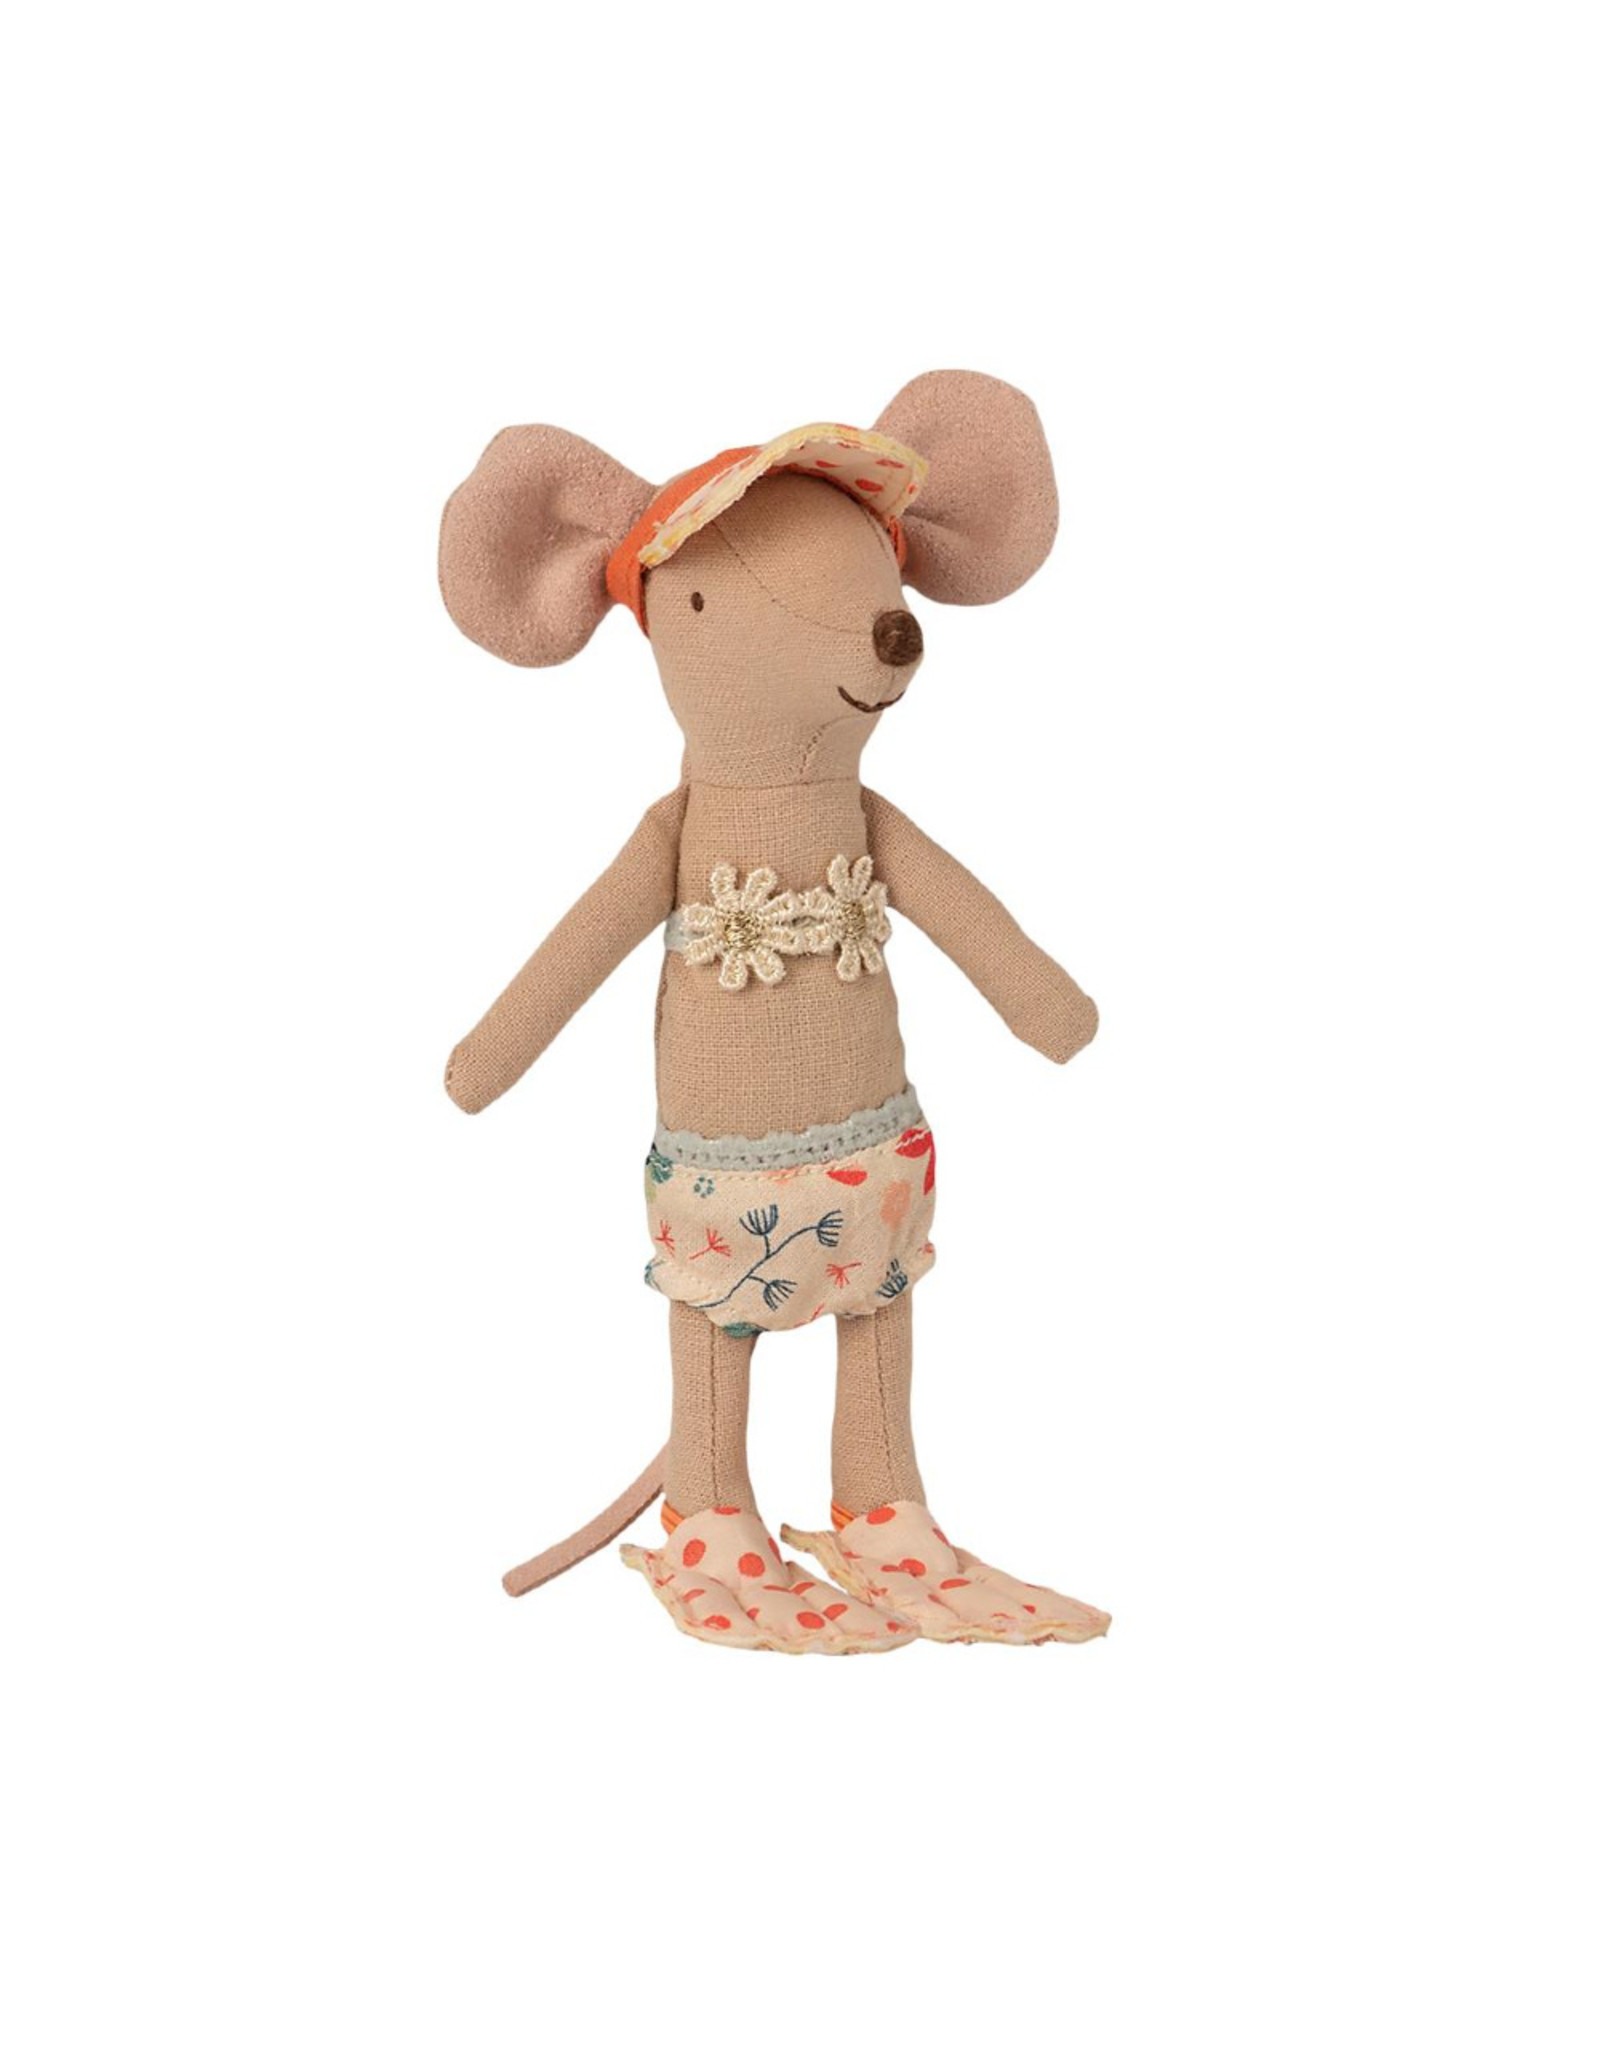 Maileg Beach Mouse - Big Sister Mouse in Beach House